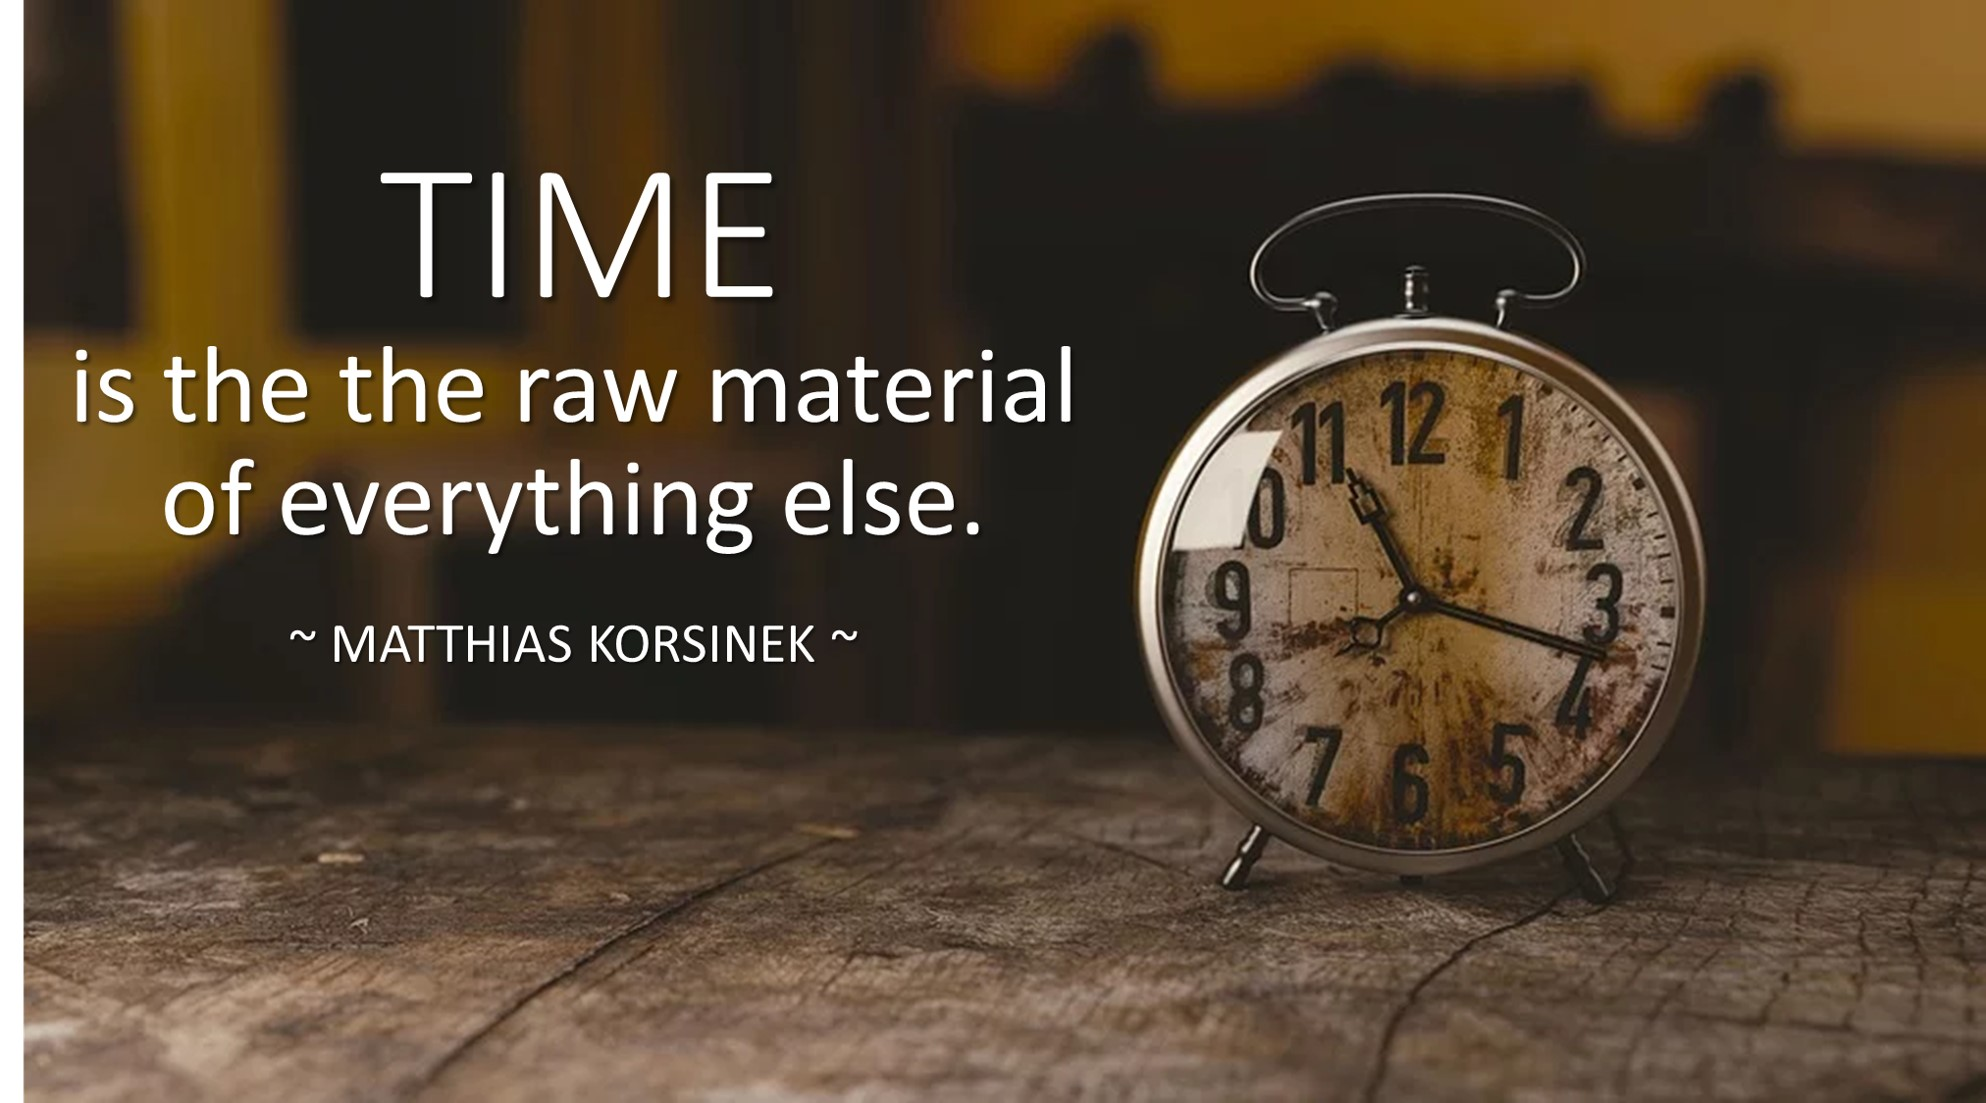 TIME is the raw material of everithing elsejpg